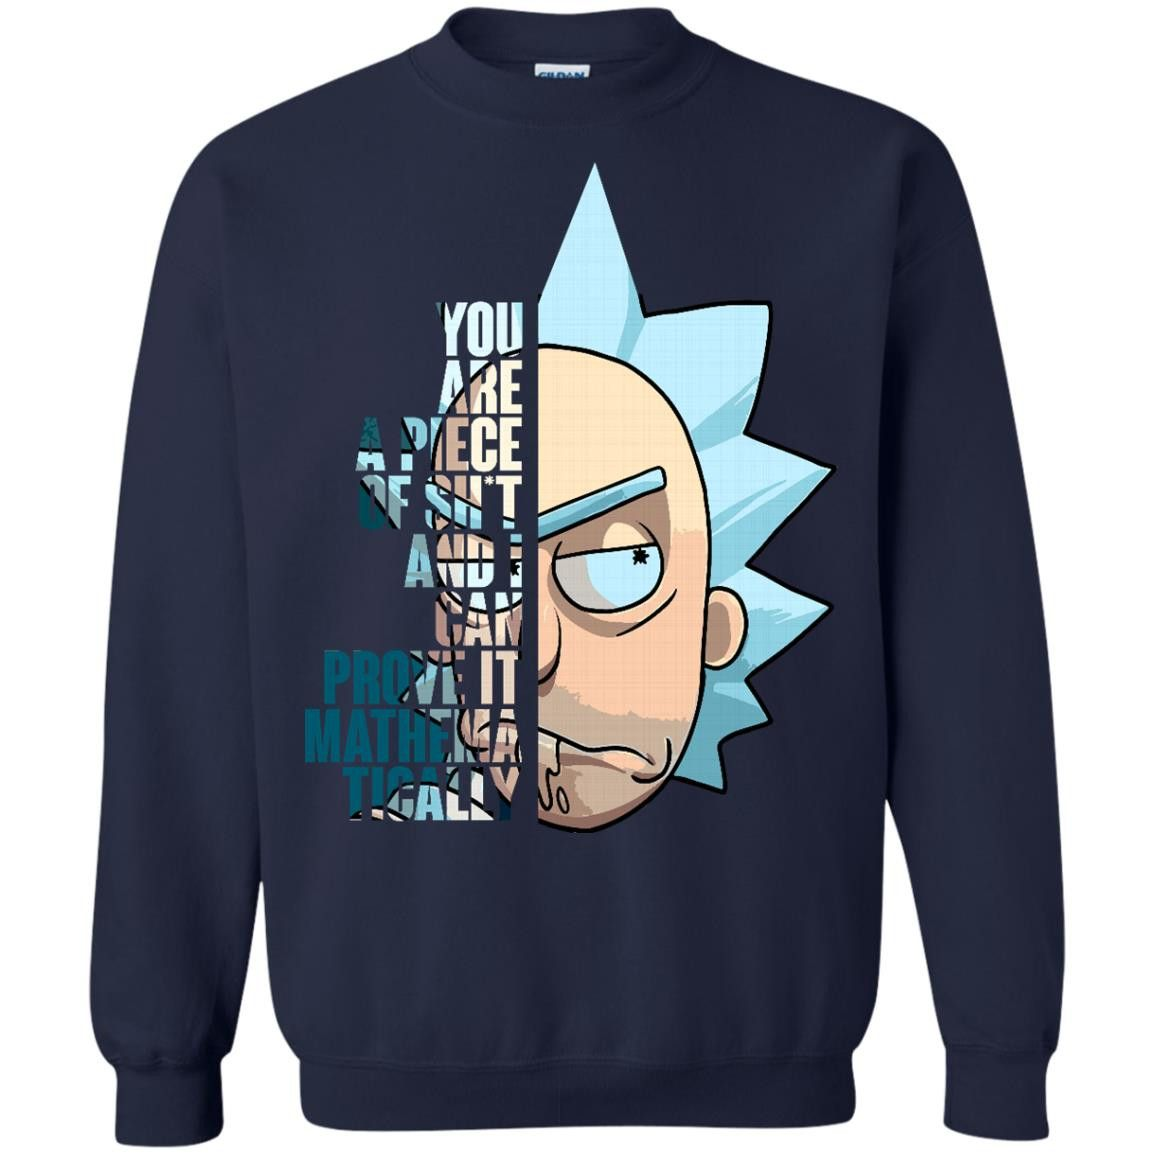 Rick And Morty Tshirts You Are A Piece Of Shit I Can Prove It Mathematically  Hoodies Sweatshirts